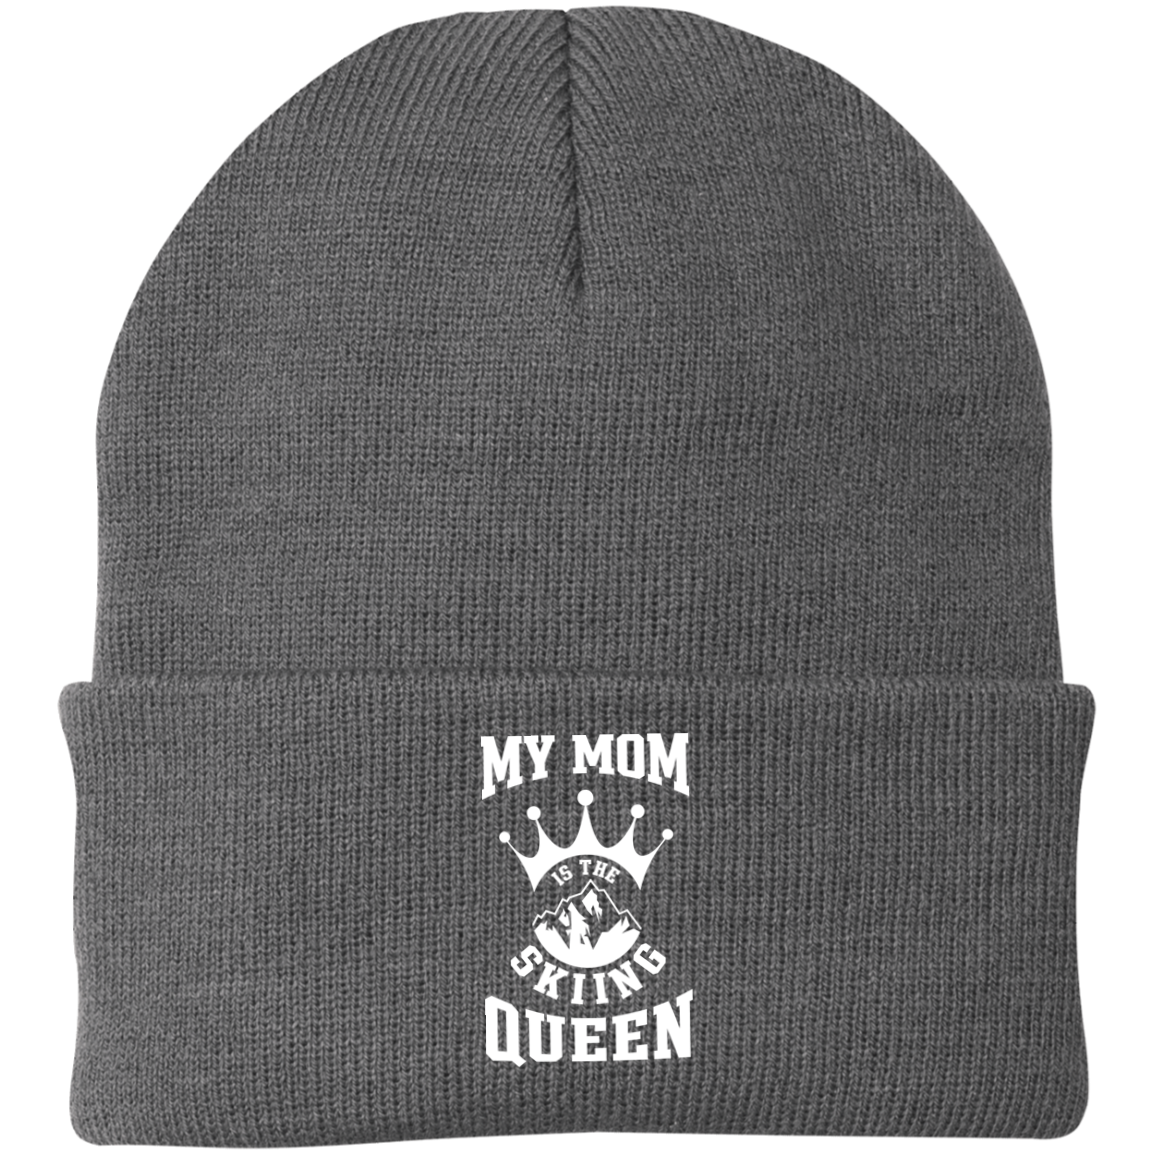 My Mom is The Skiing Queen Knit Cap - Powderaddicts